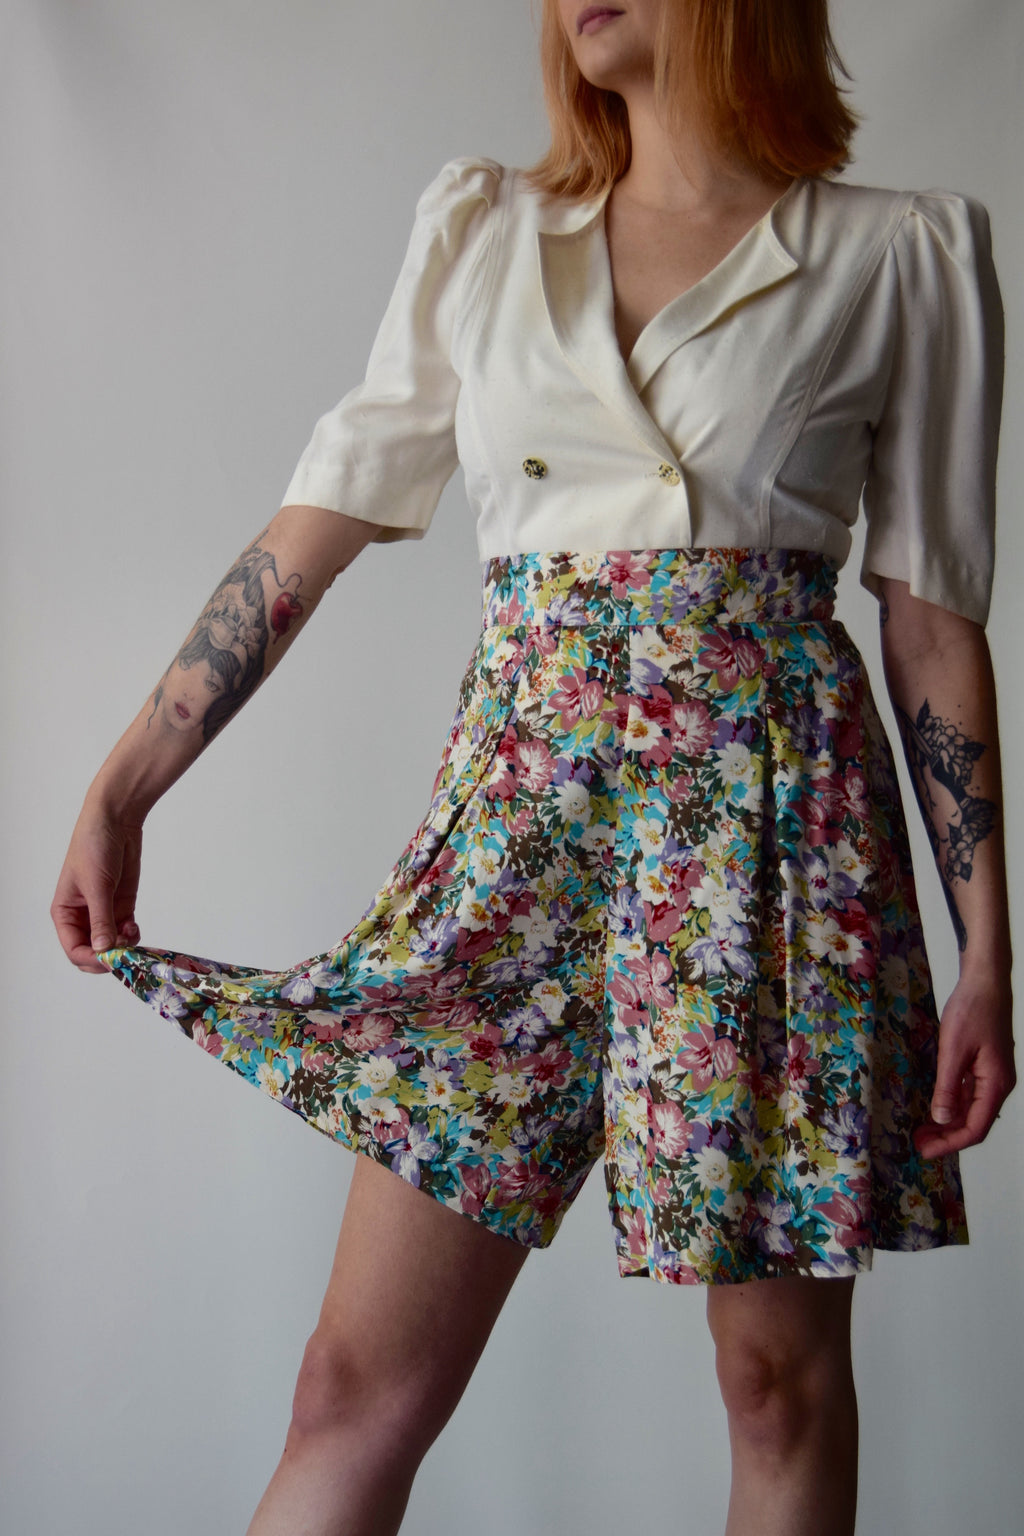 Wildflower Fancy Trouser Shorts FREE SHIPPING TO THE U.S.